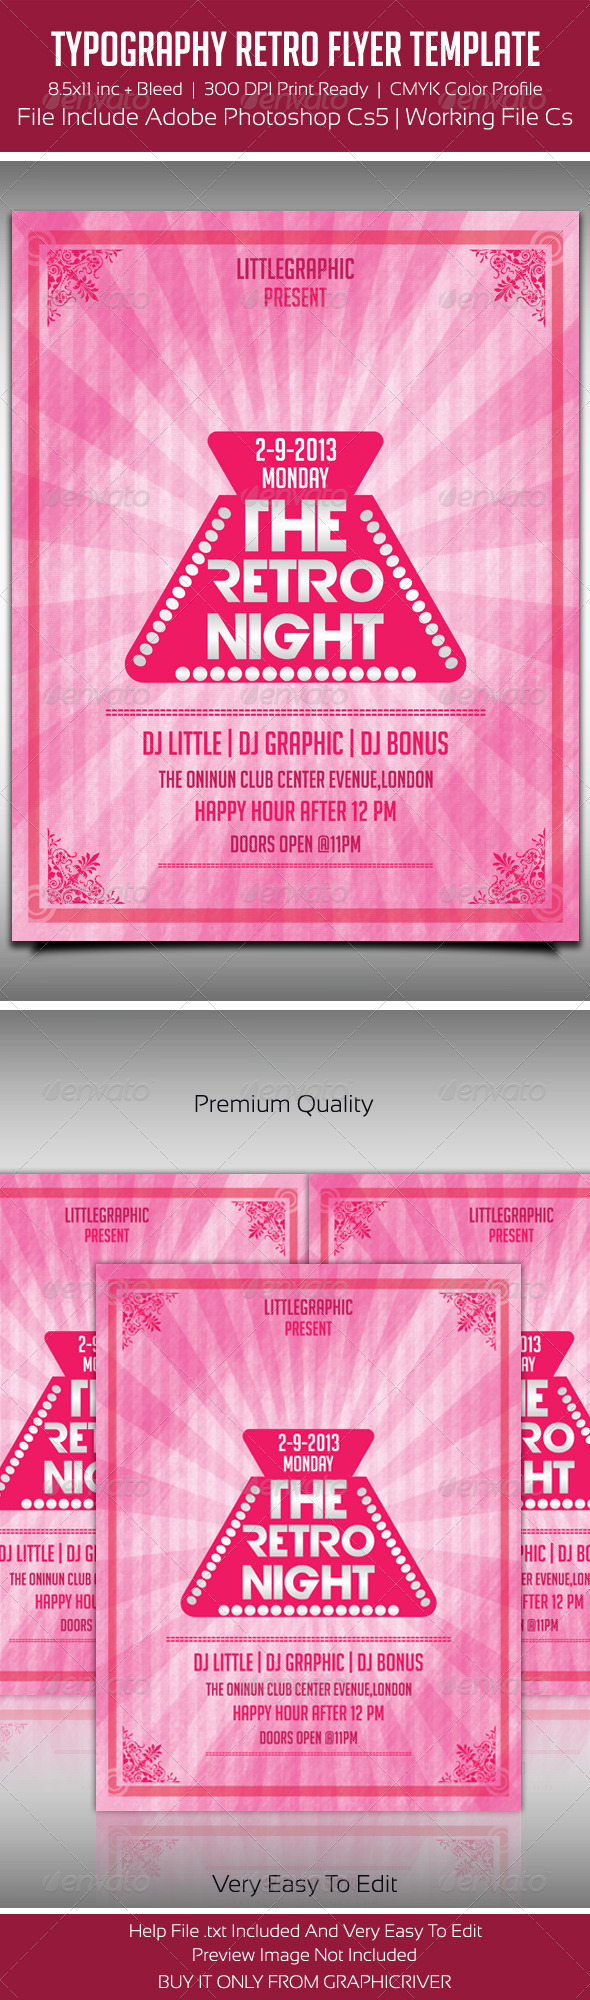 GraphicRiver Typography Retro Party Flyer Template 2 5433624